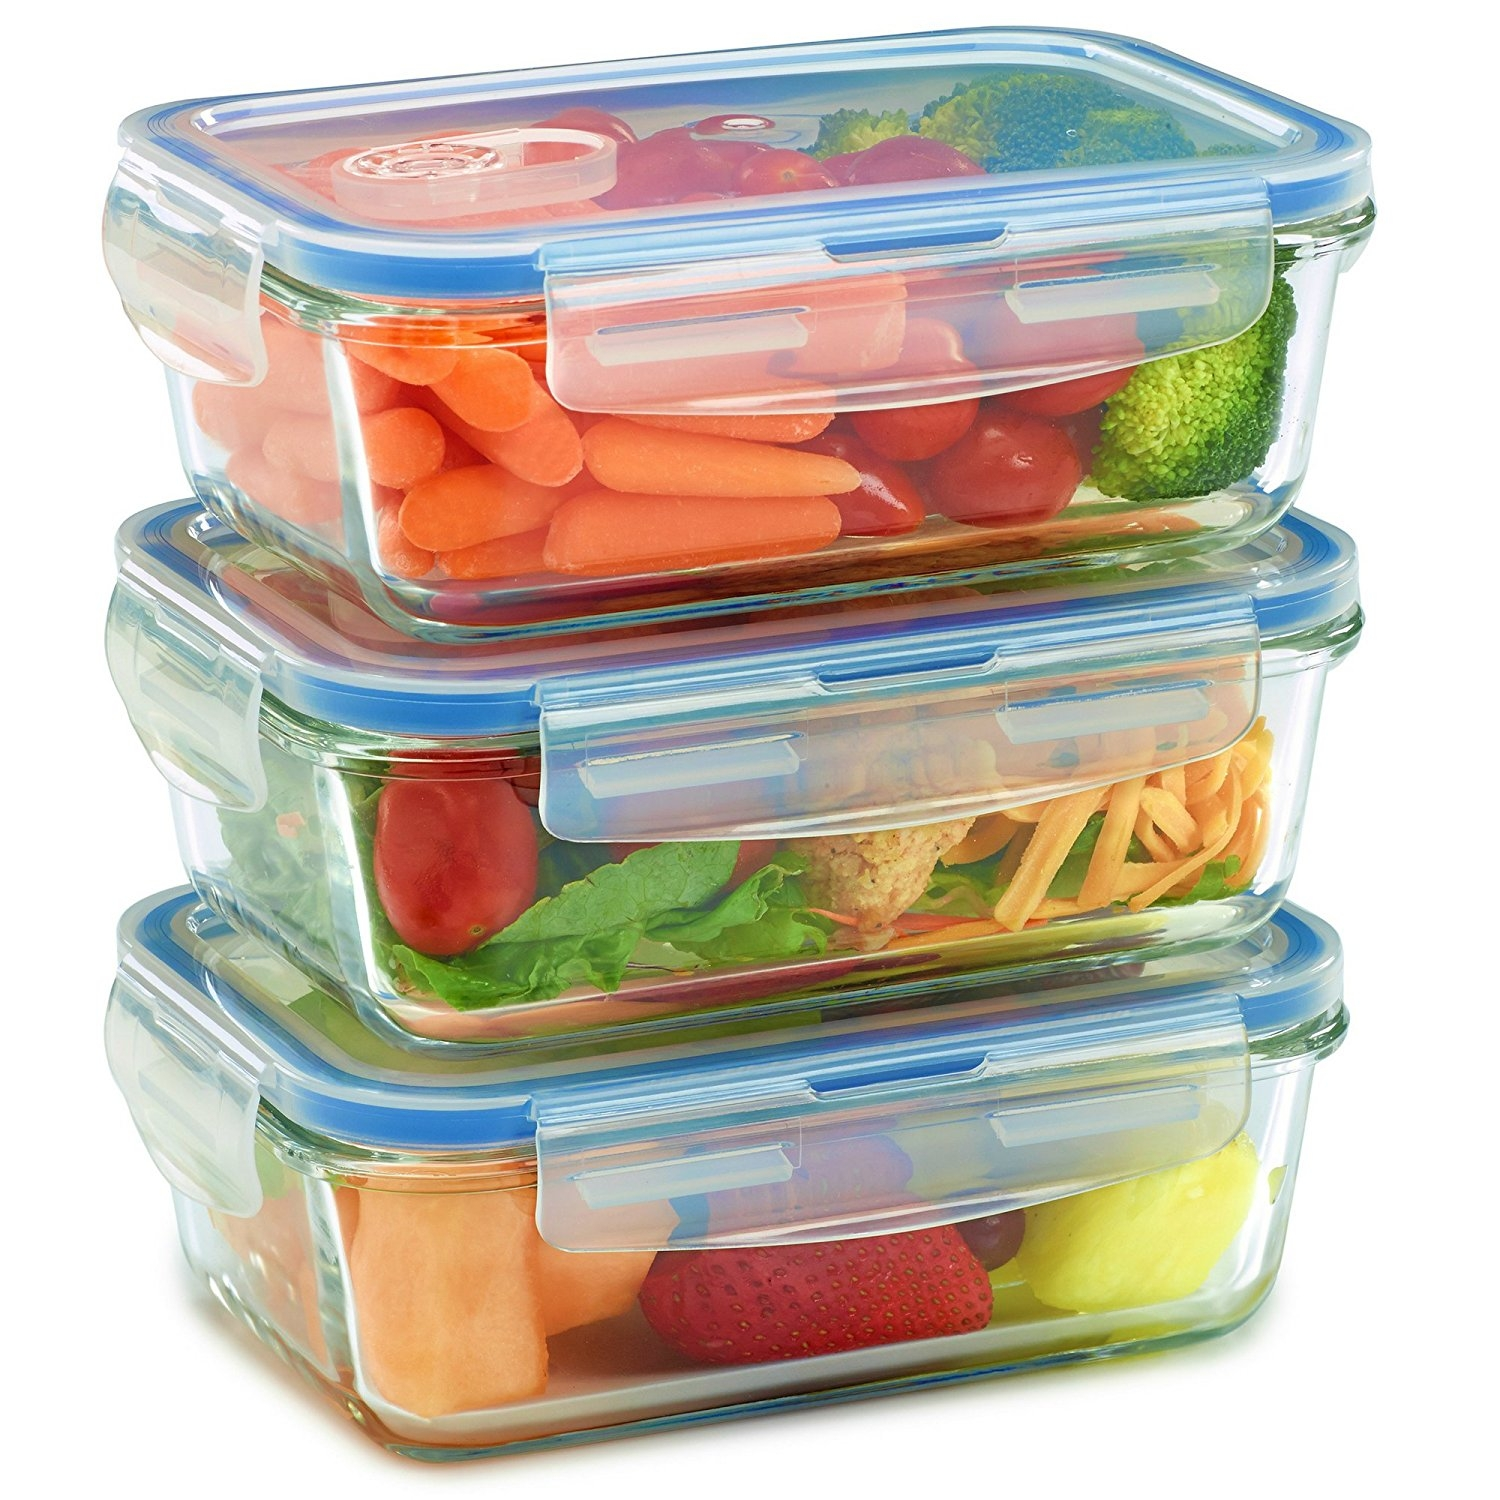 3 Pack Glass Meal Prep Containers for Food Storage w  Snap Locking Lids Airtight & Leak Proof BPA Free Oven,... by 1790